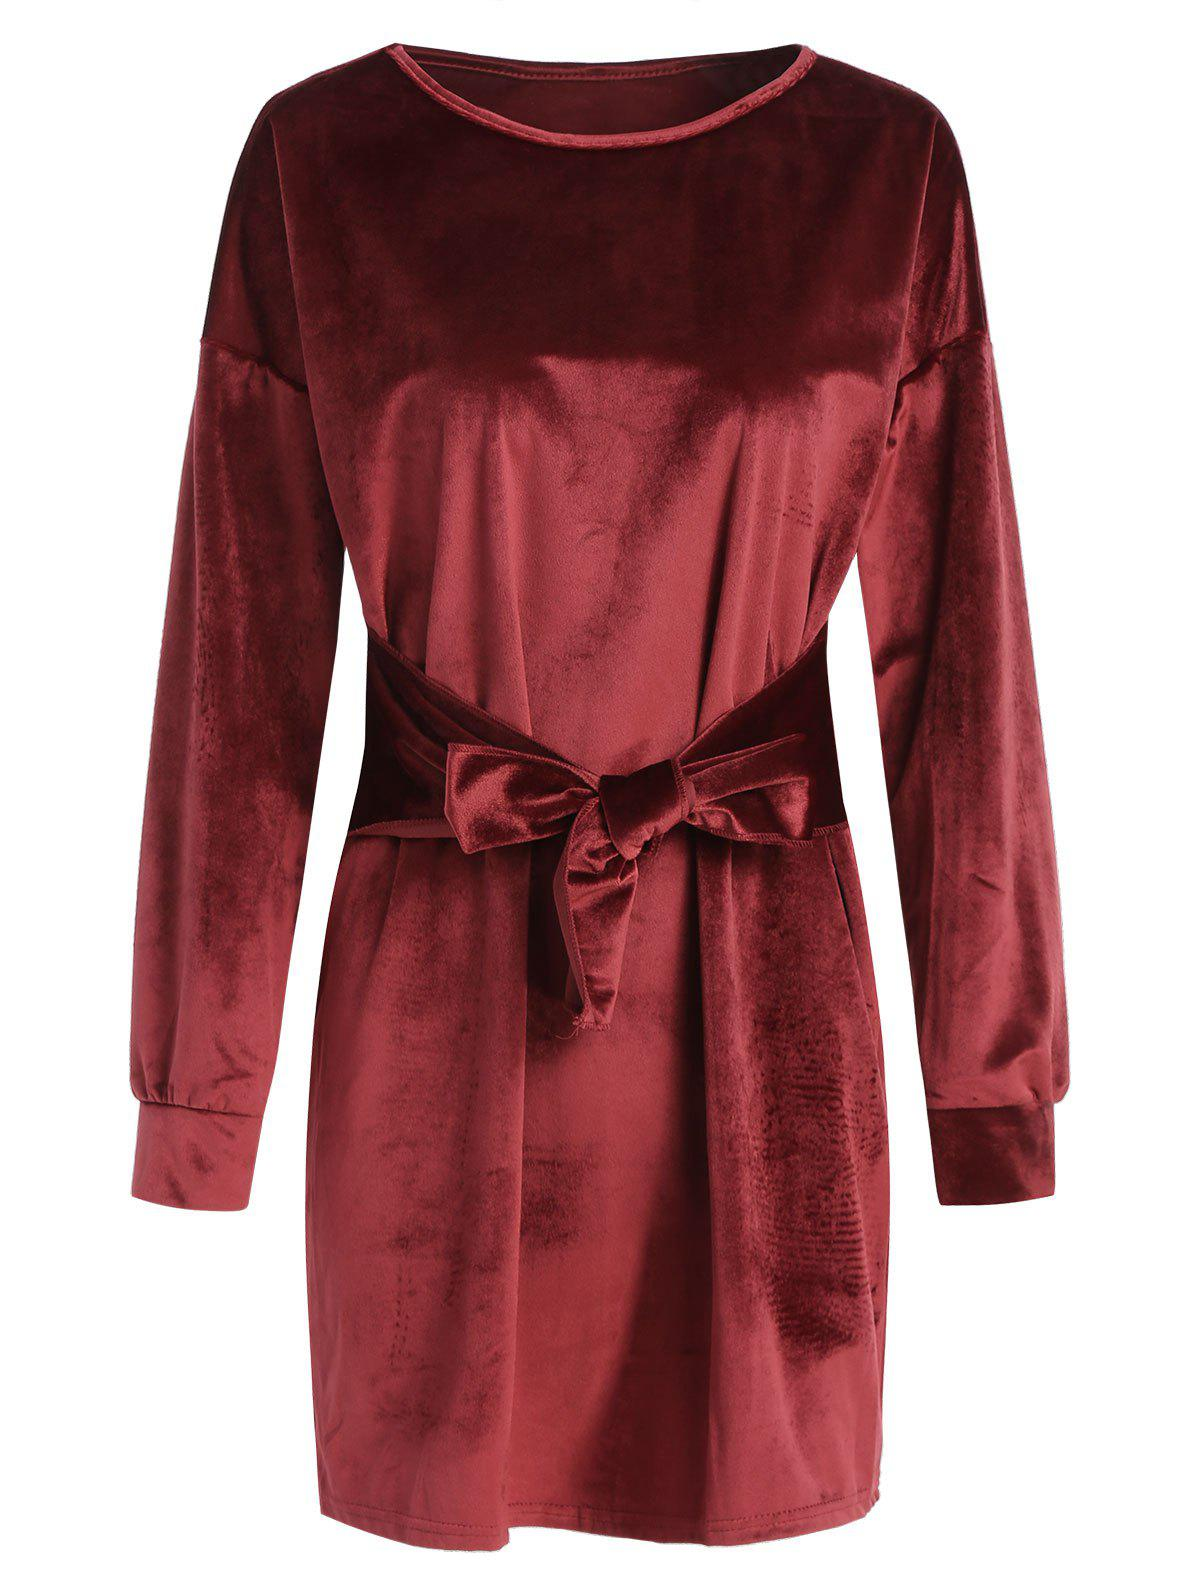 Tied Mini Velvet Dress - RED WINE L